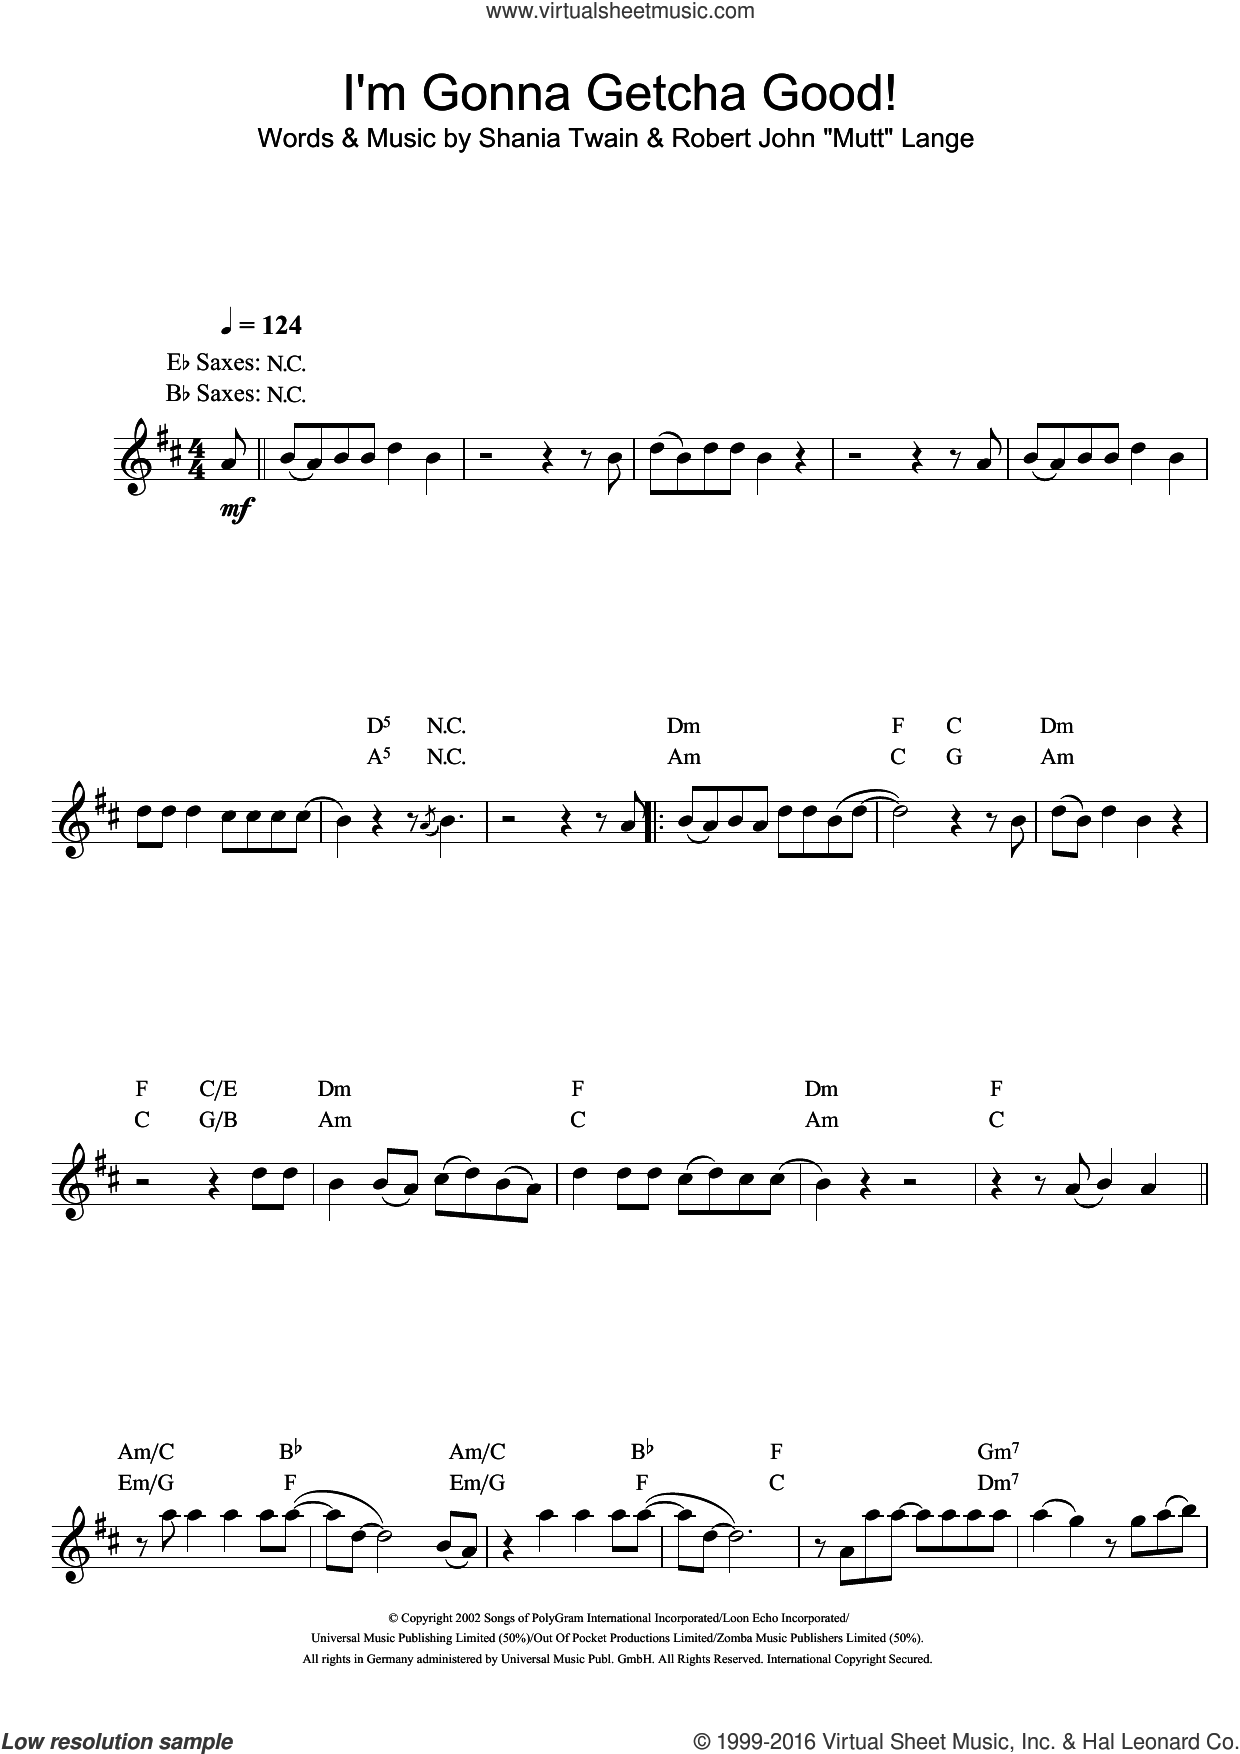 I'm Gonna Getcha Good! sheet music for saxophone solo by Shania Twain and Robert John Lange, intermediate. Score Image Preview.